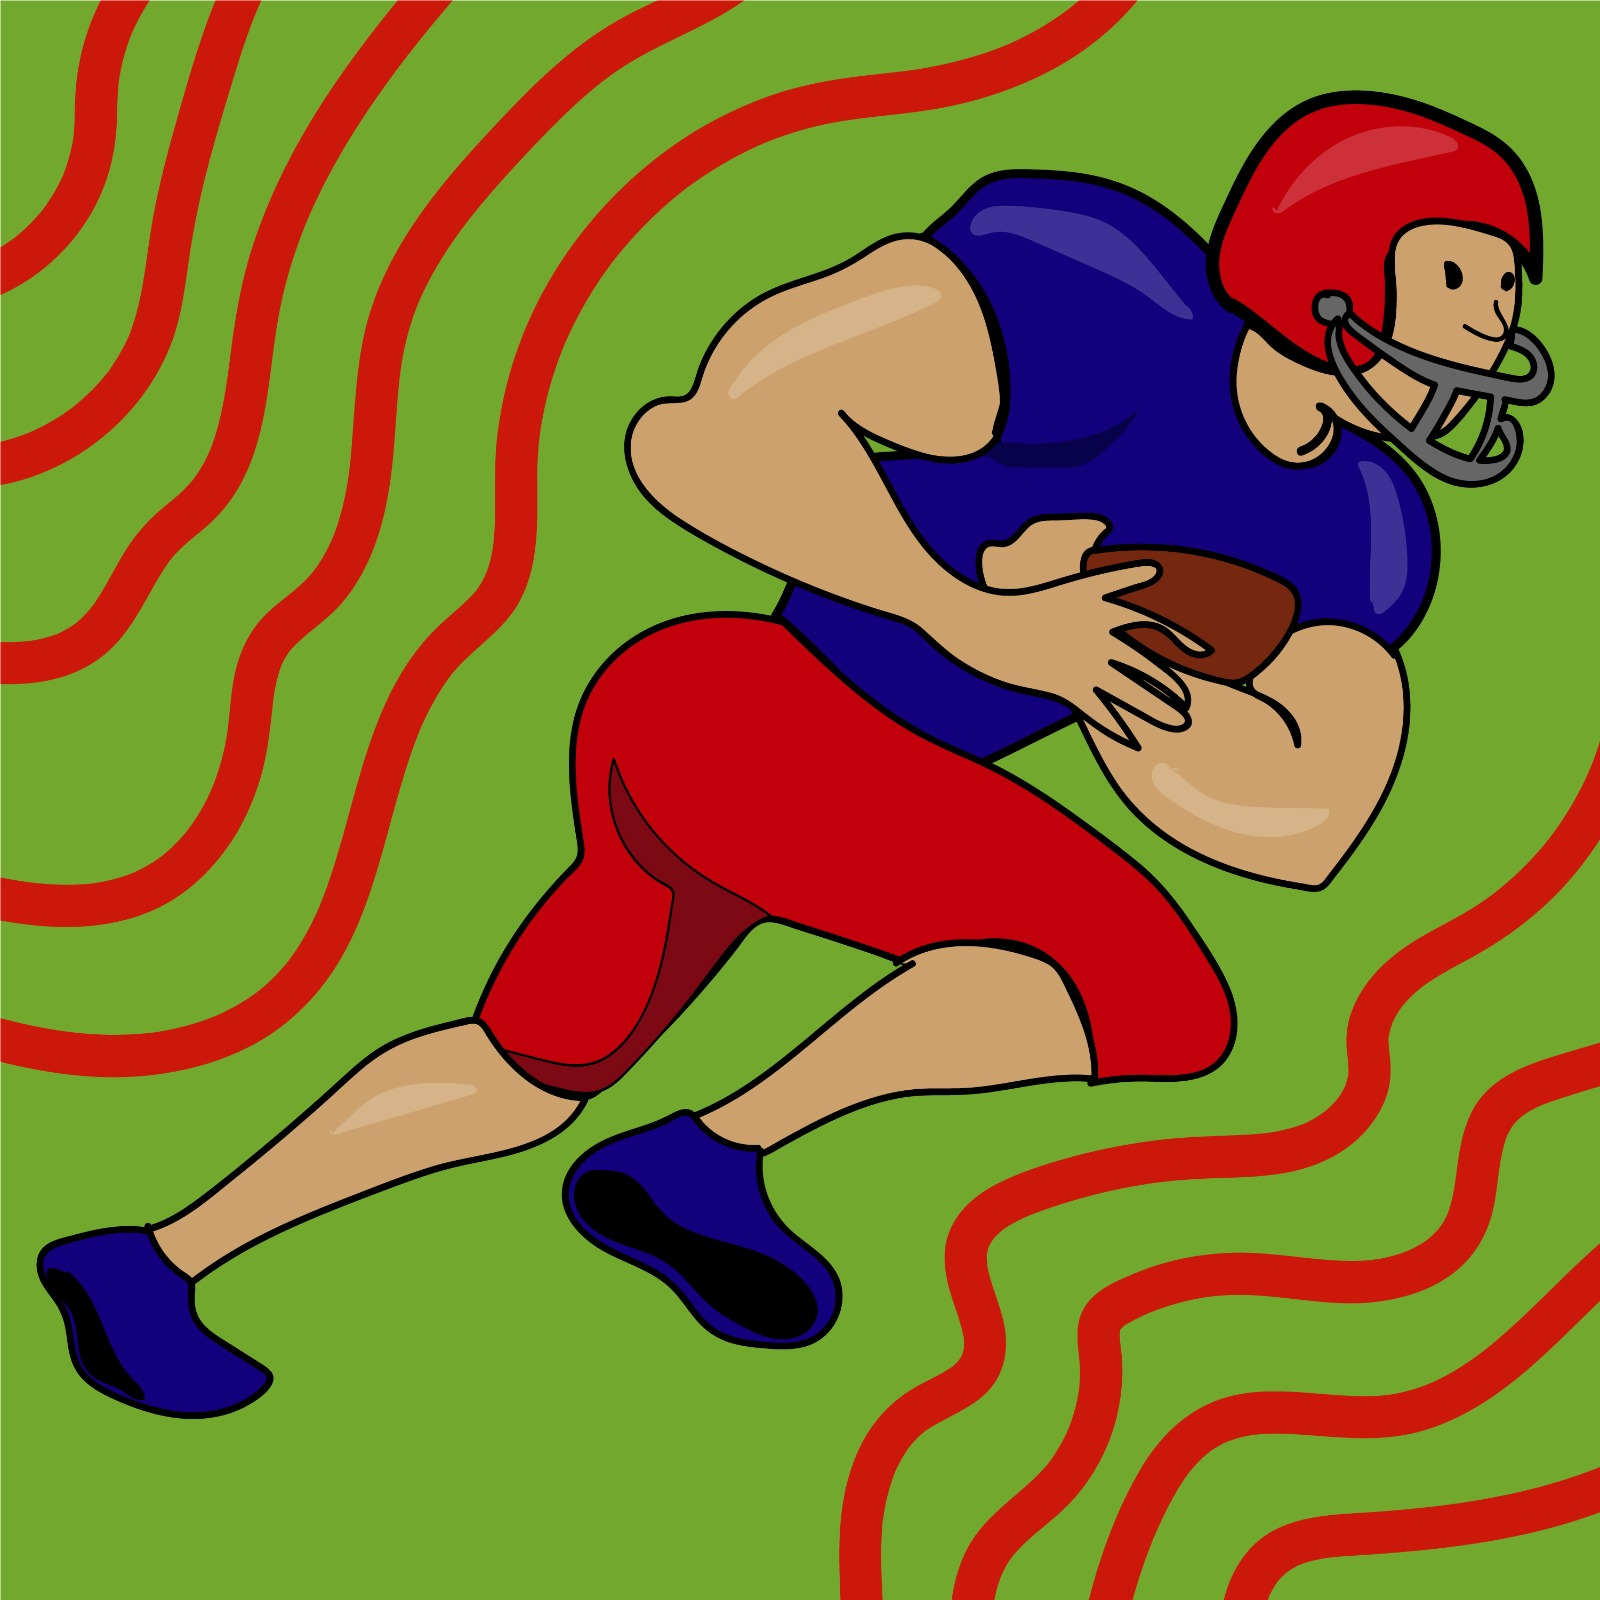 Rita Azar illustrates football player for 360 MAGAZINE